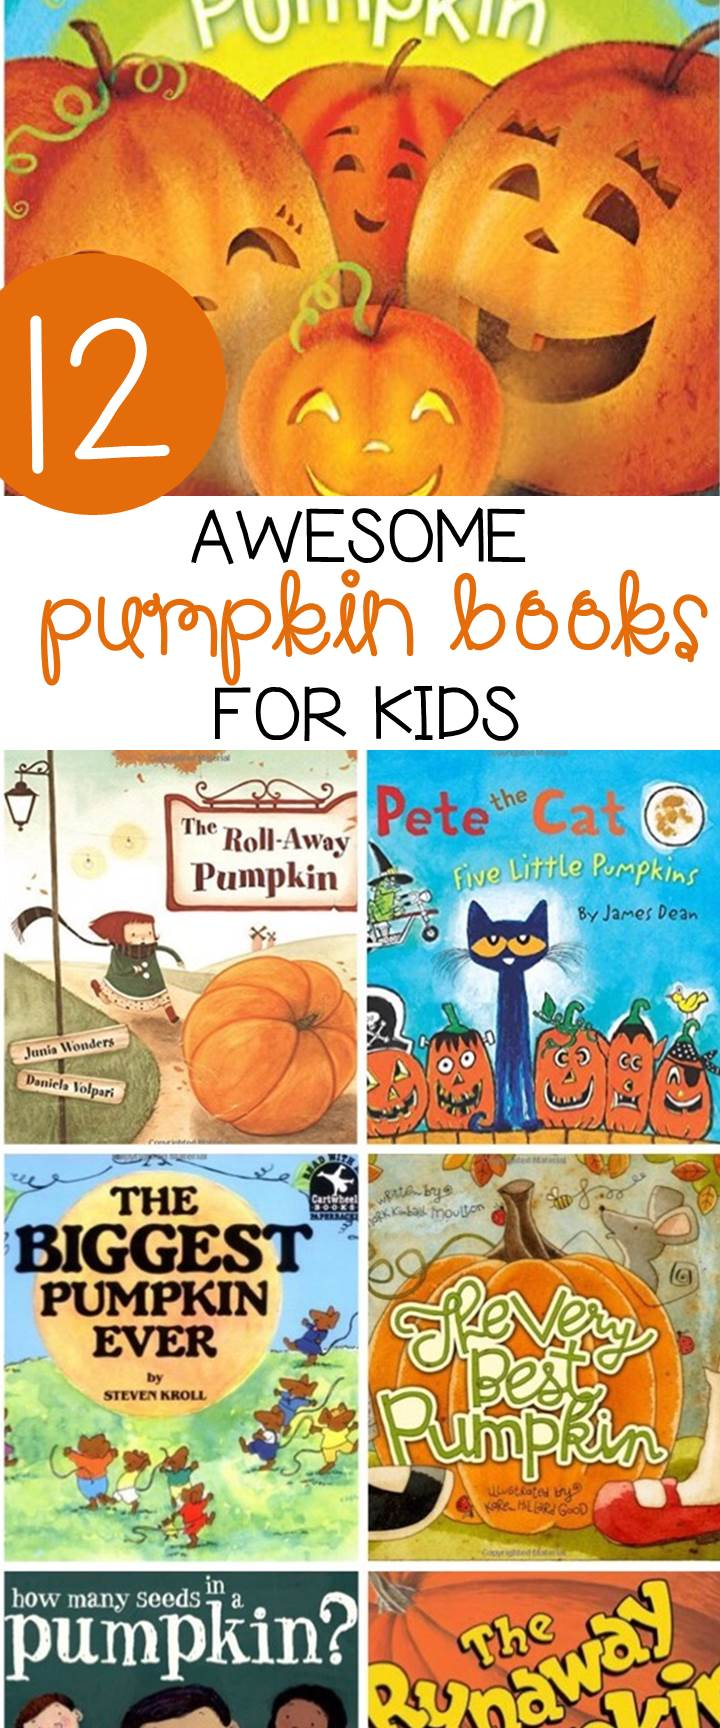 These pumpkin books for kids are great to read this fall!